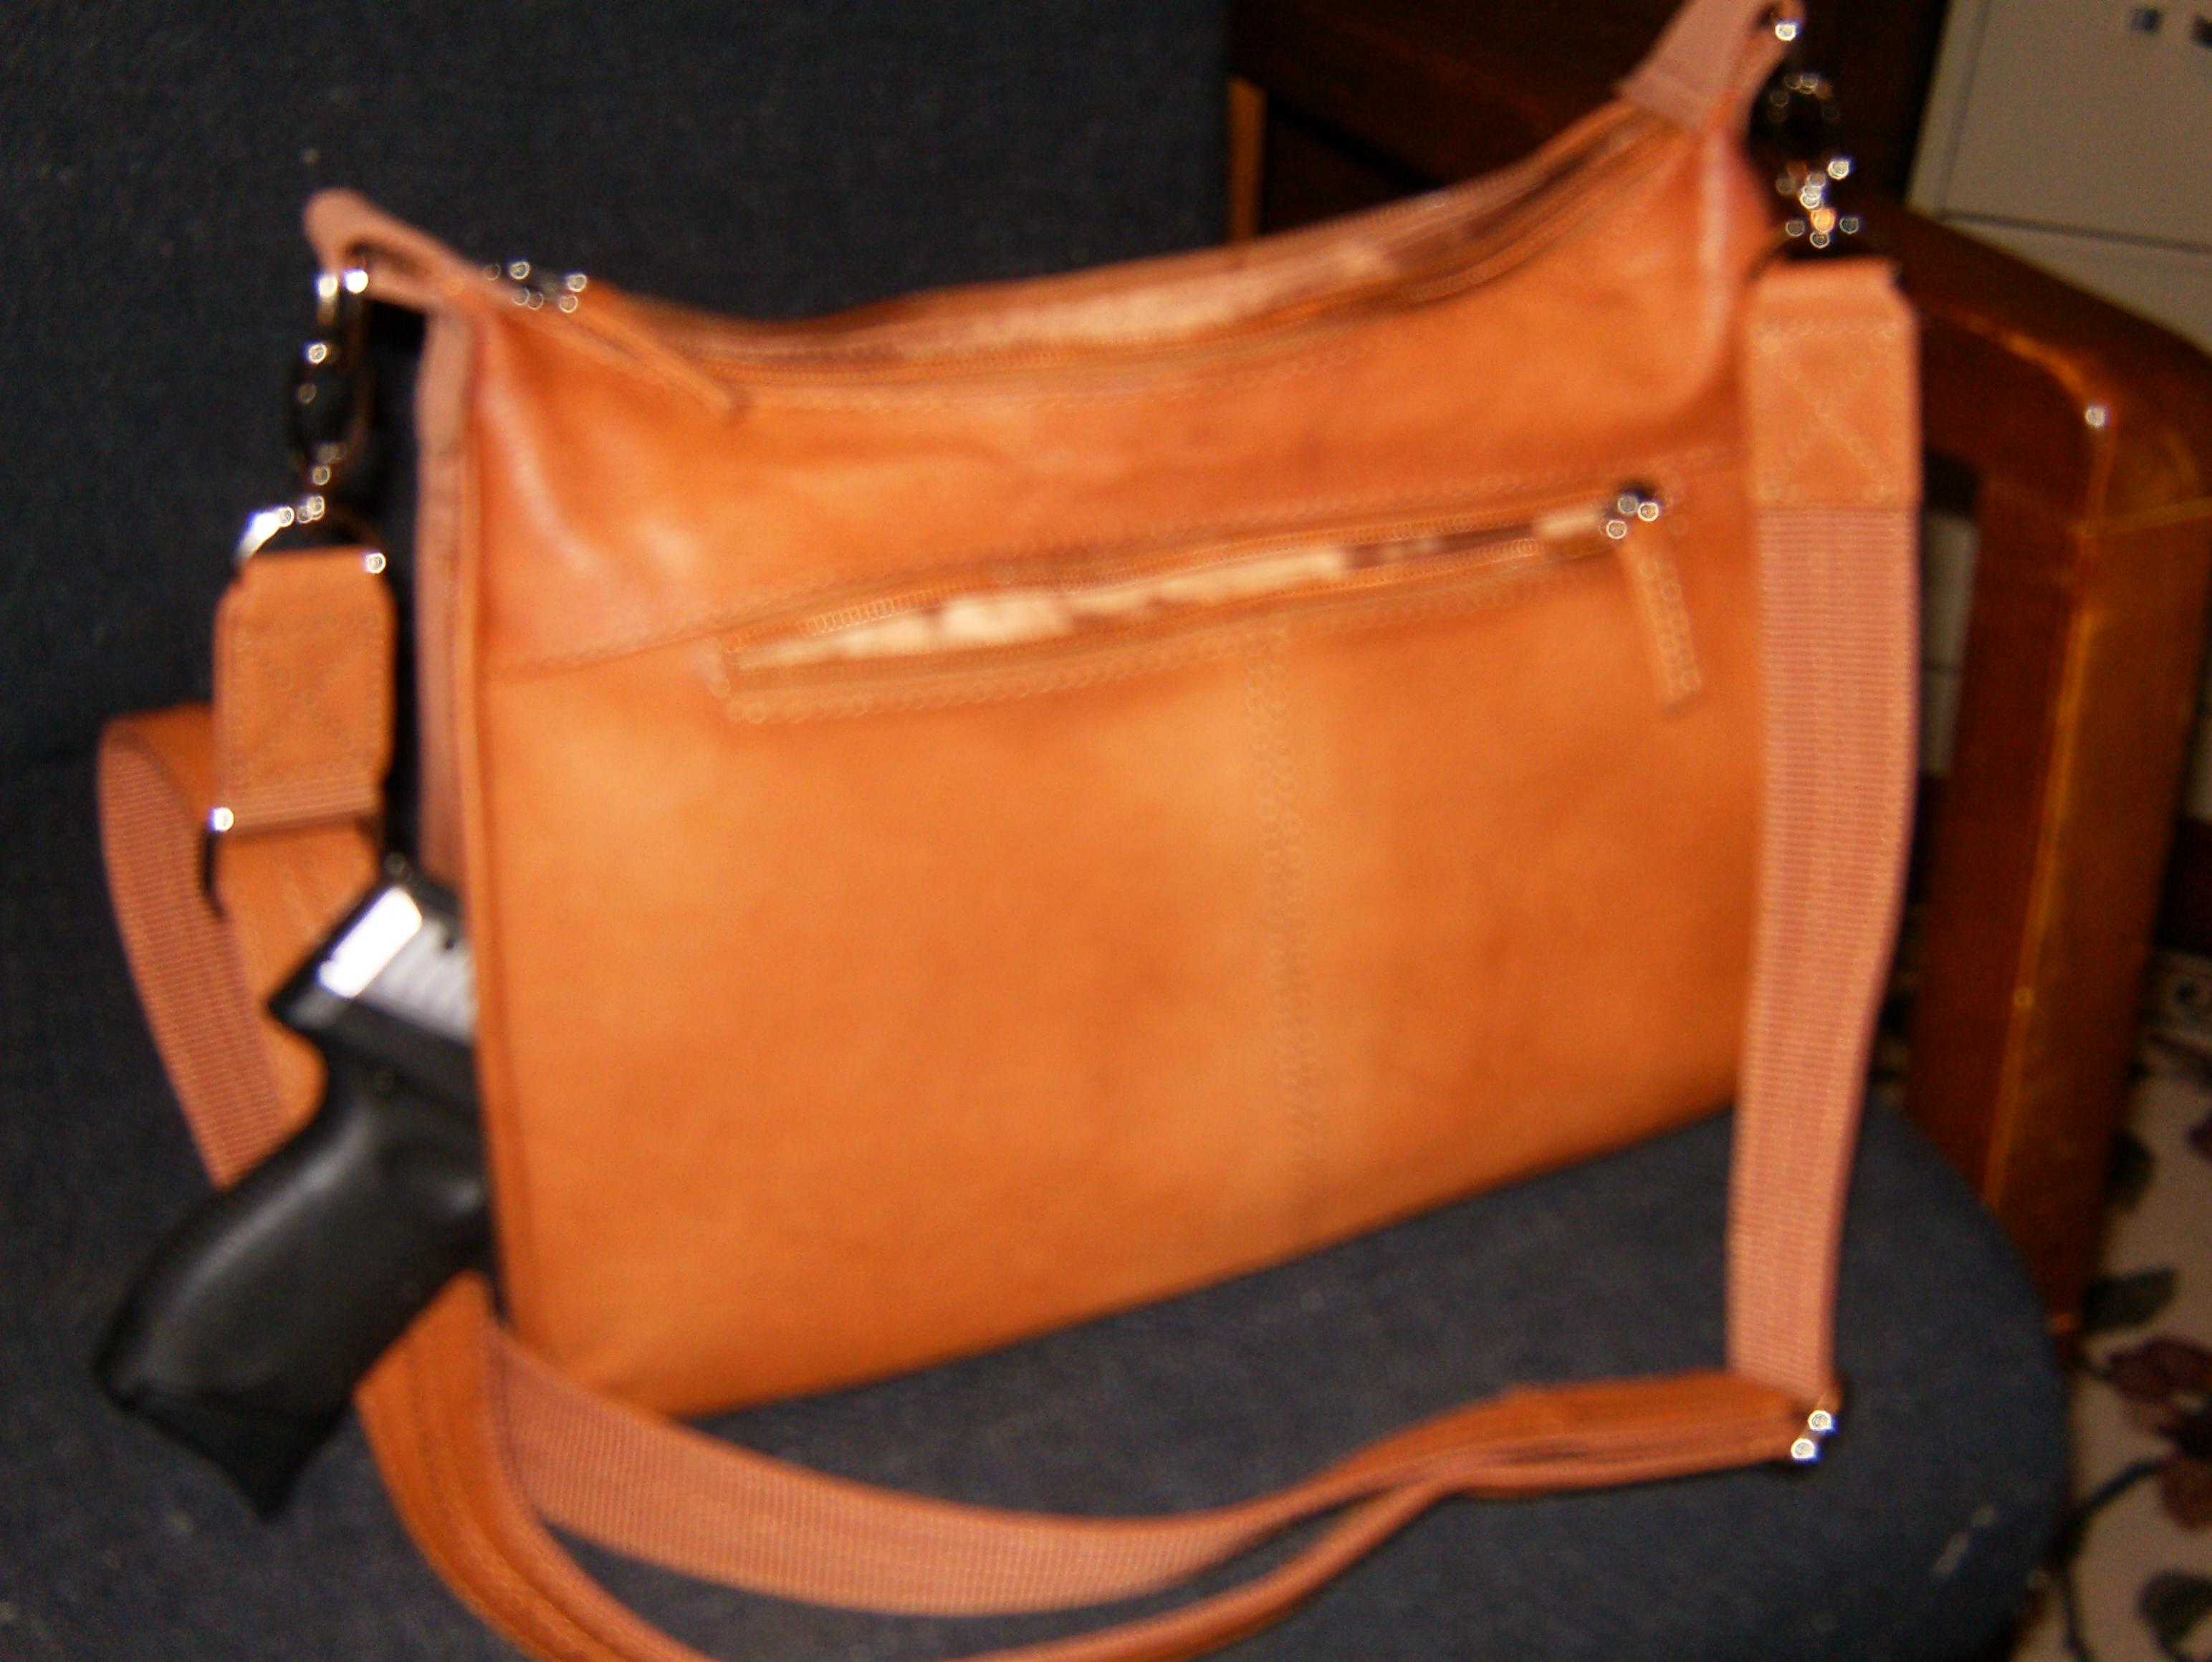 Let's See Your Pic's - How You Carry Concealed.-hpim2578-2-.jpg